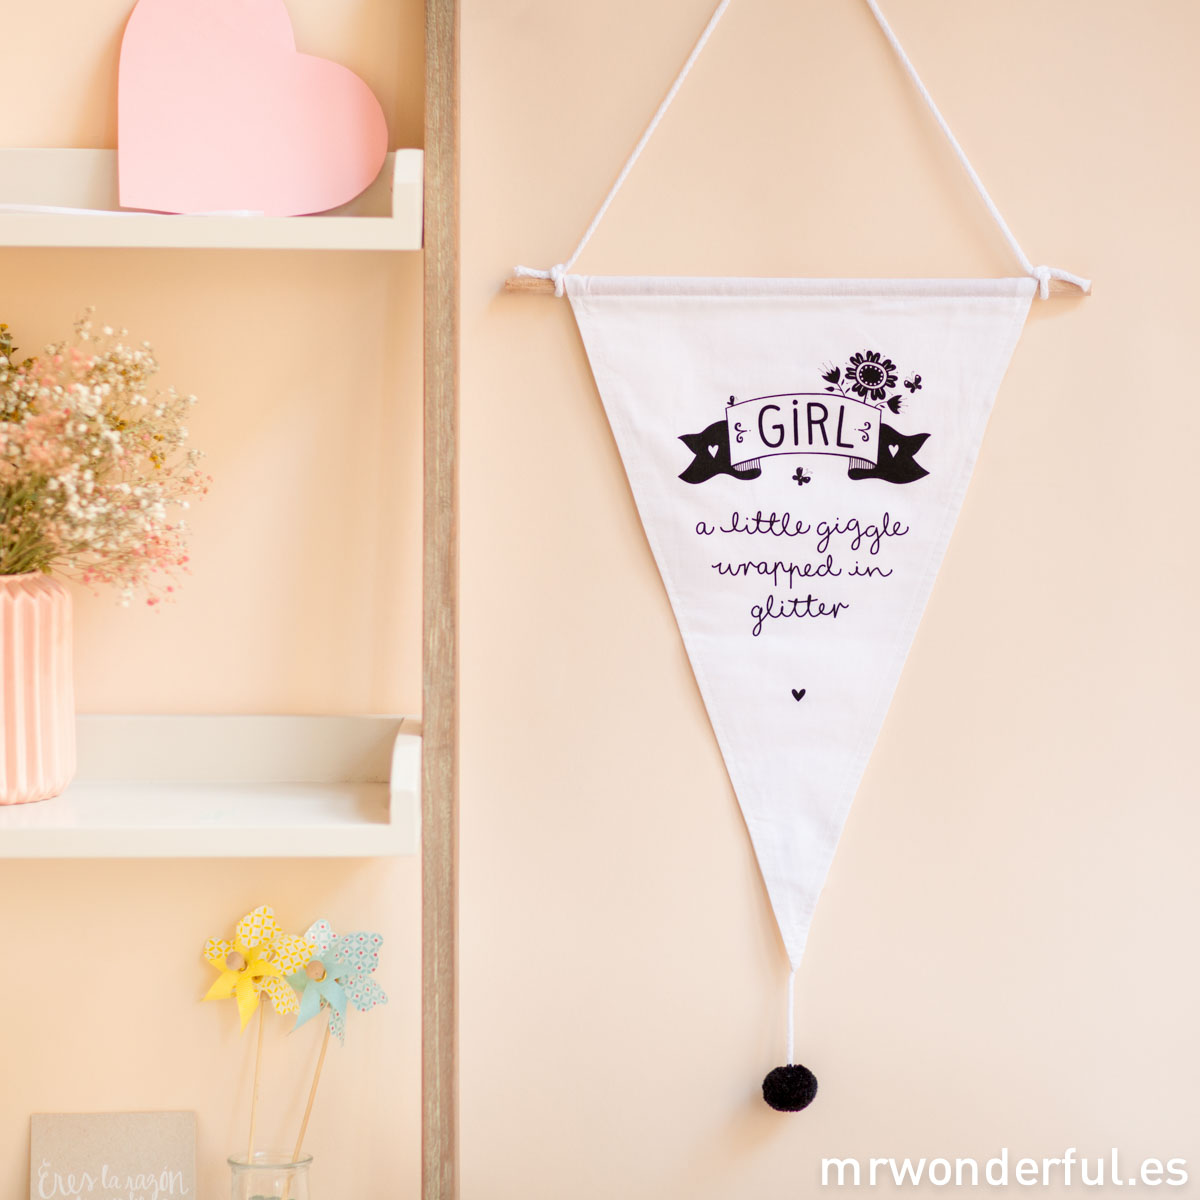 mrwonderful_PRA02780_LIFG005_little-lovely_banderin-girl_2016-1-Editar